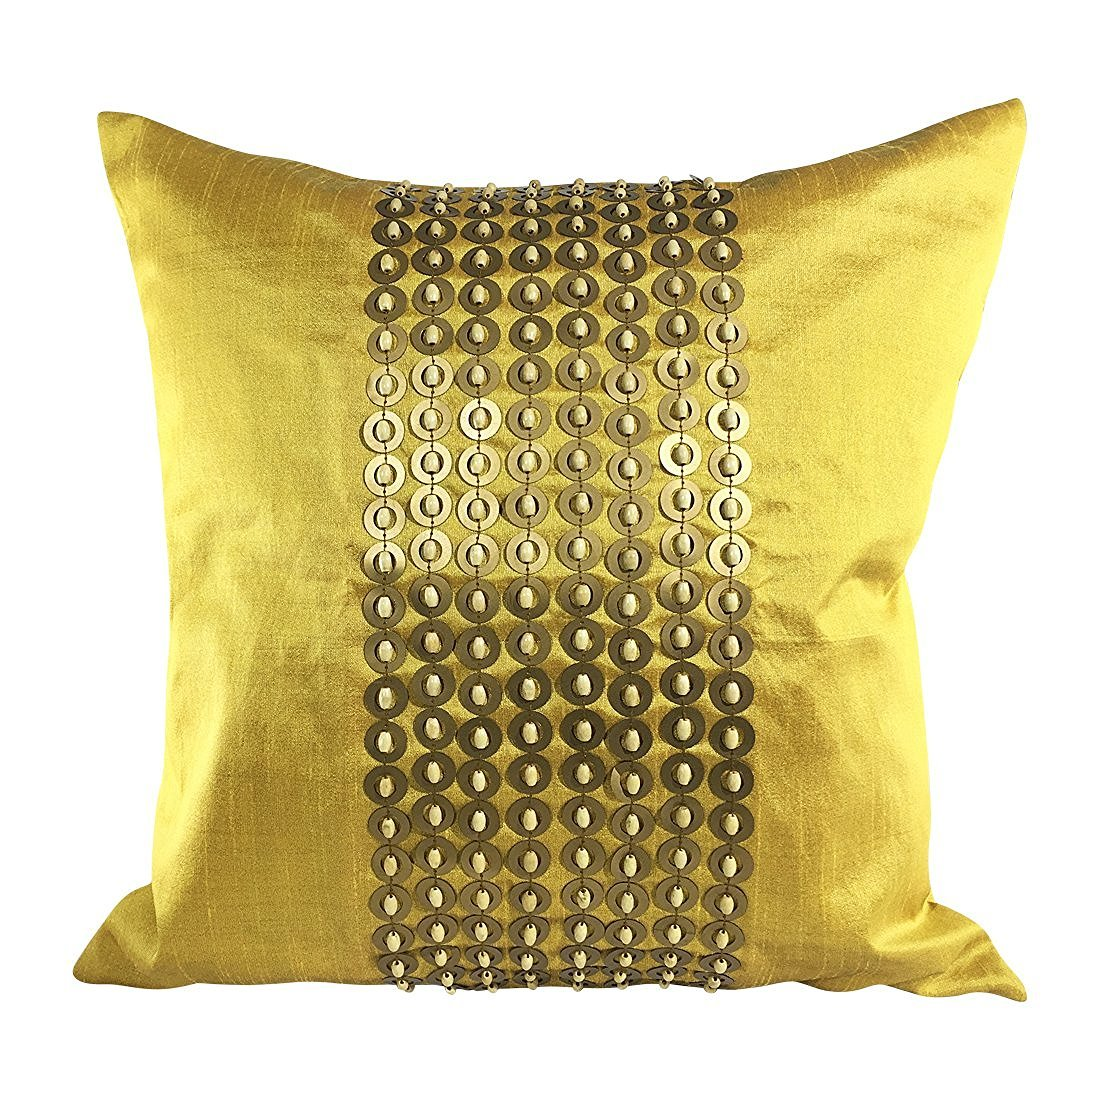 Mustard Yellow Gold Decorative Pillow Cover With Gold Sequins and Wood Bead Embroidery In Panel Pattern 16x16 inch, Mustard Yellow